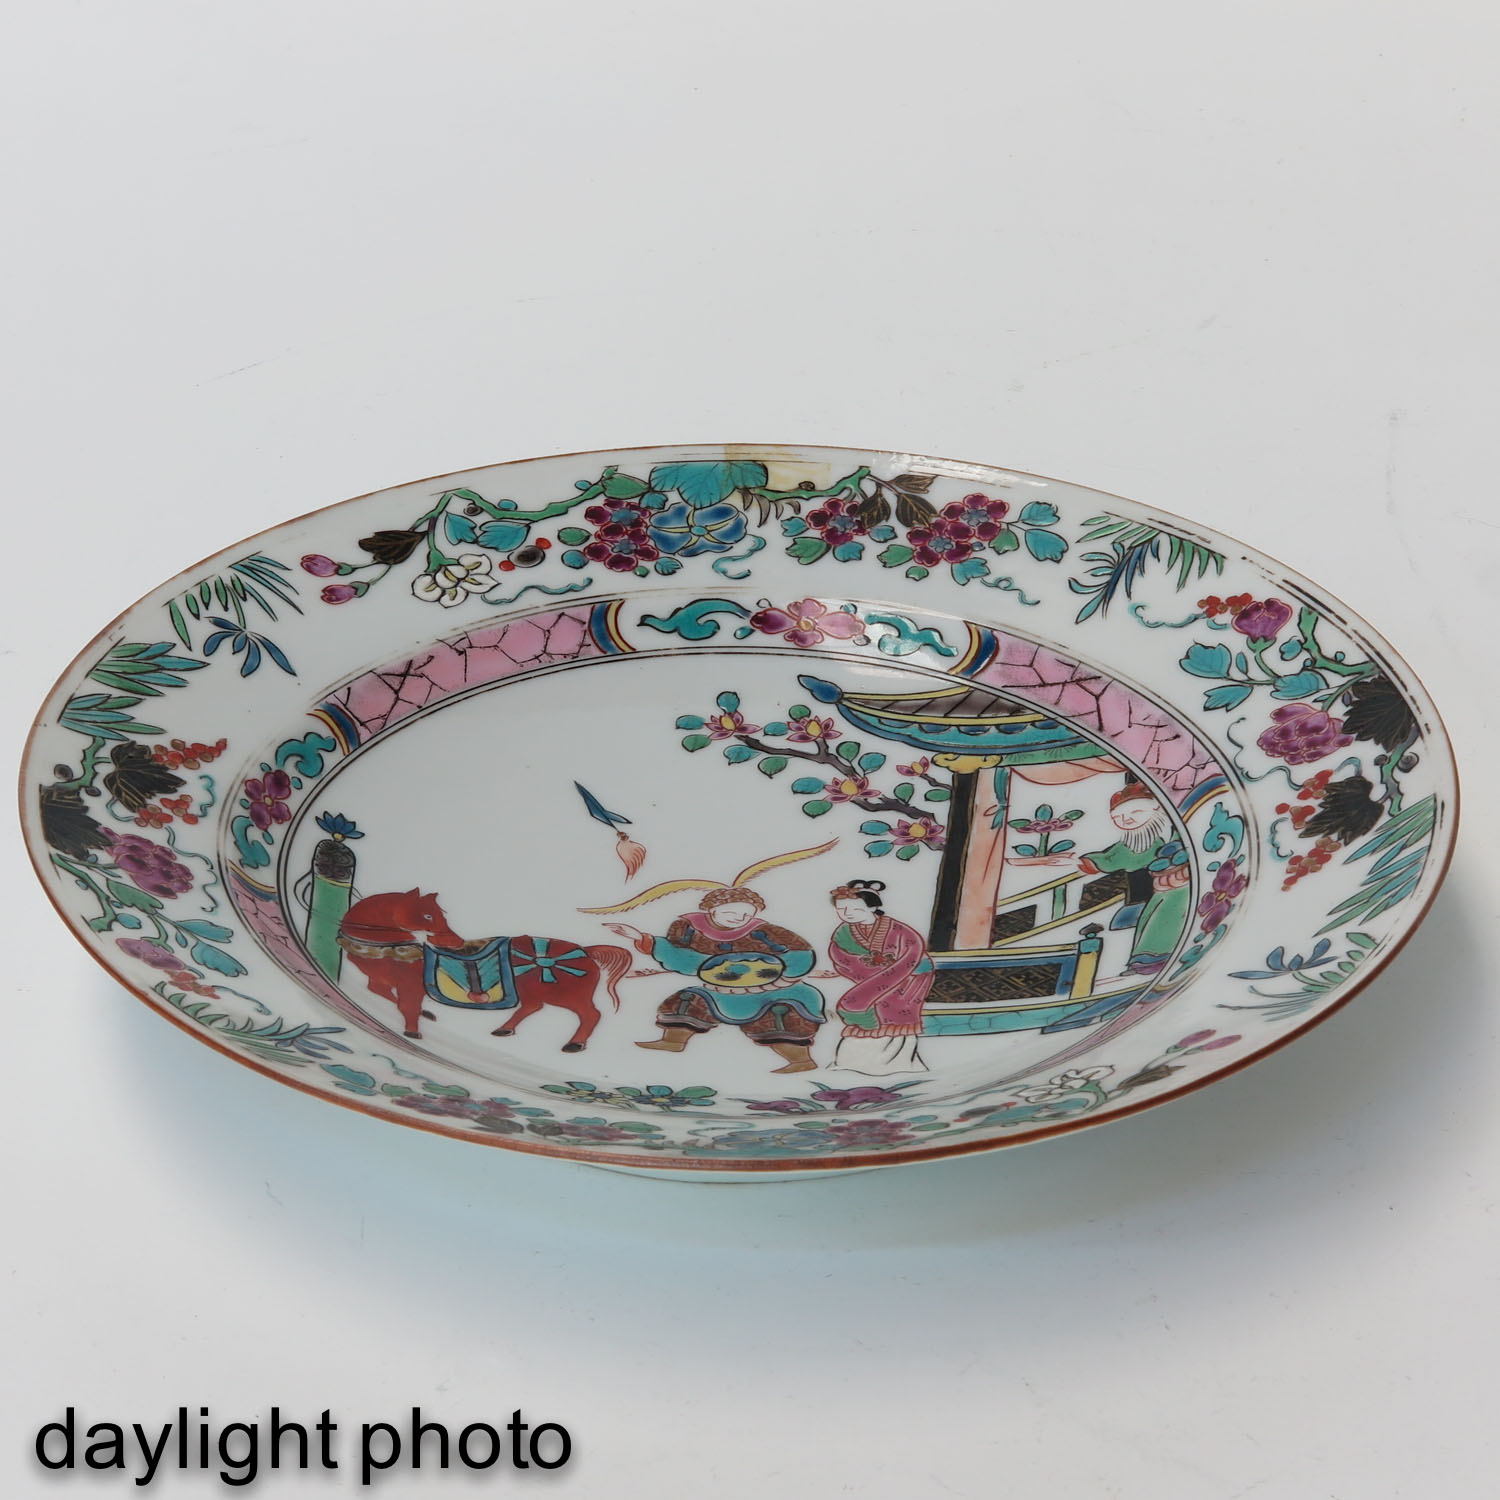 A Series of 4 Famille Rose Plates - Image 7 of 10